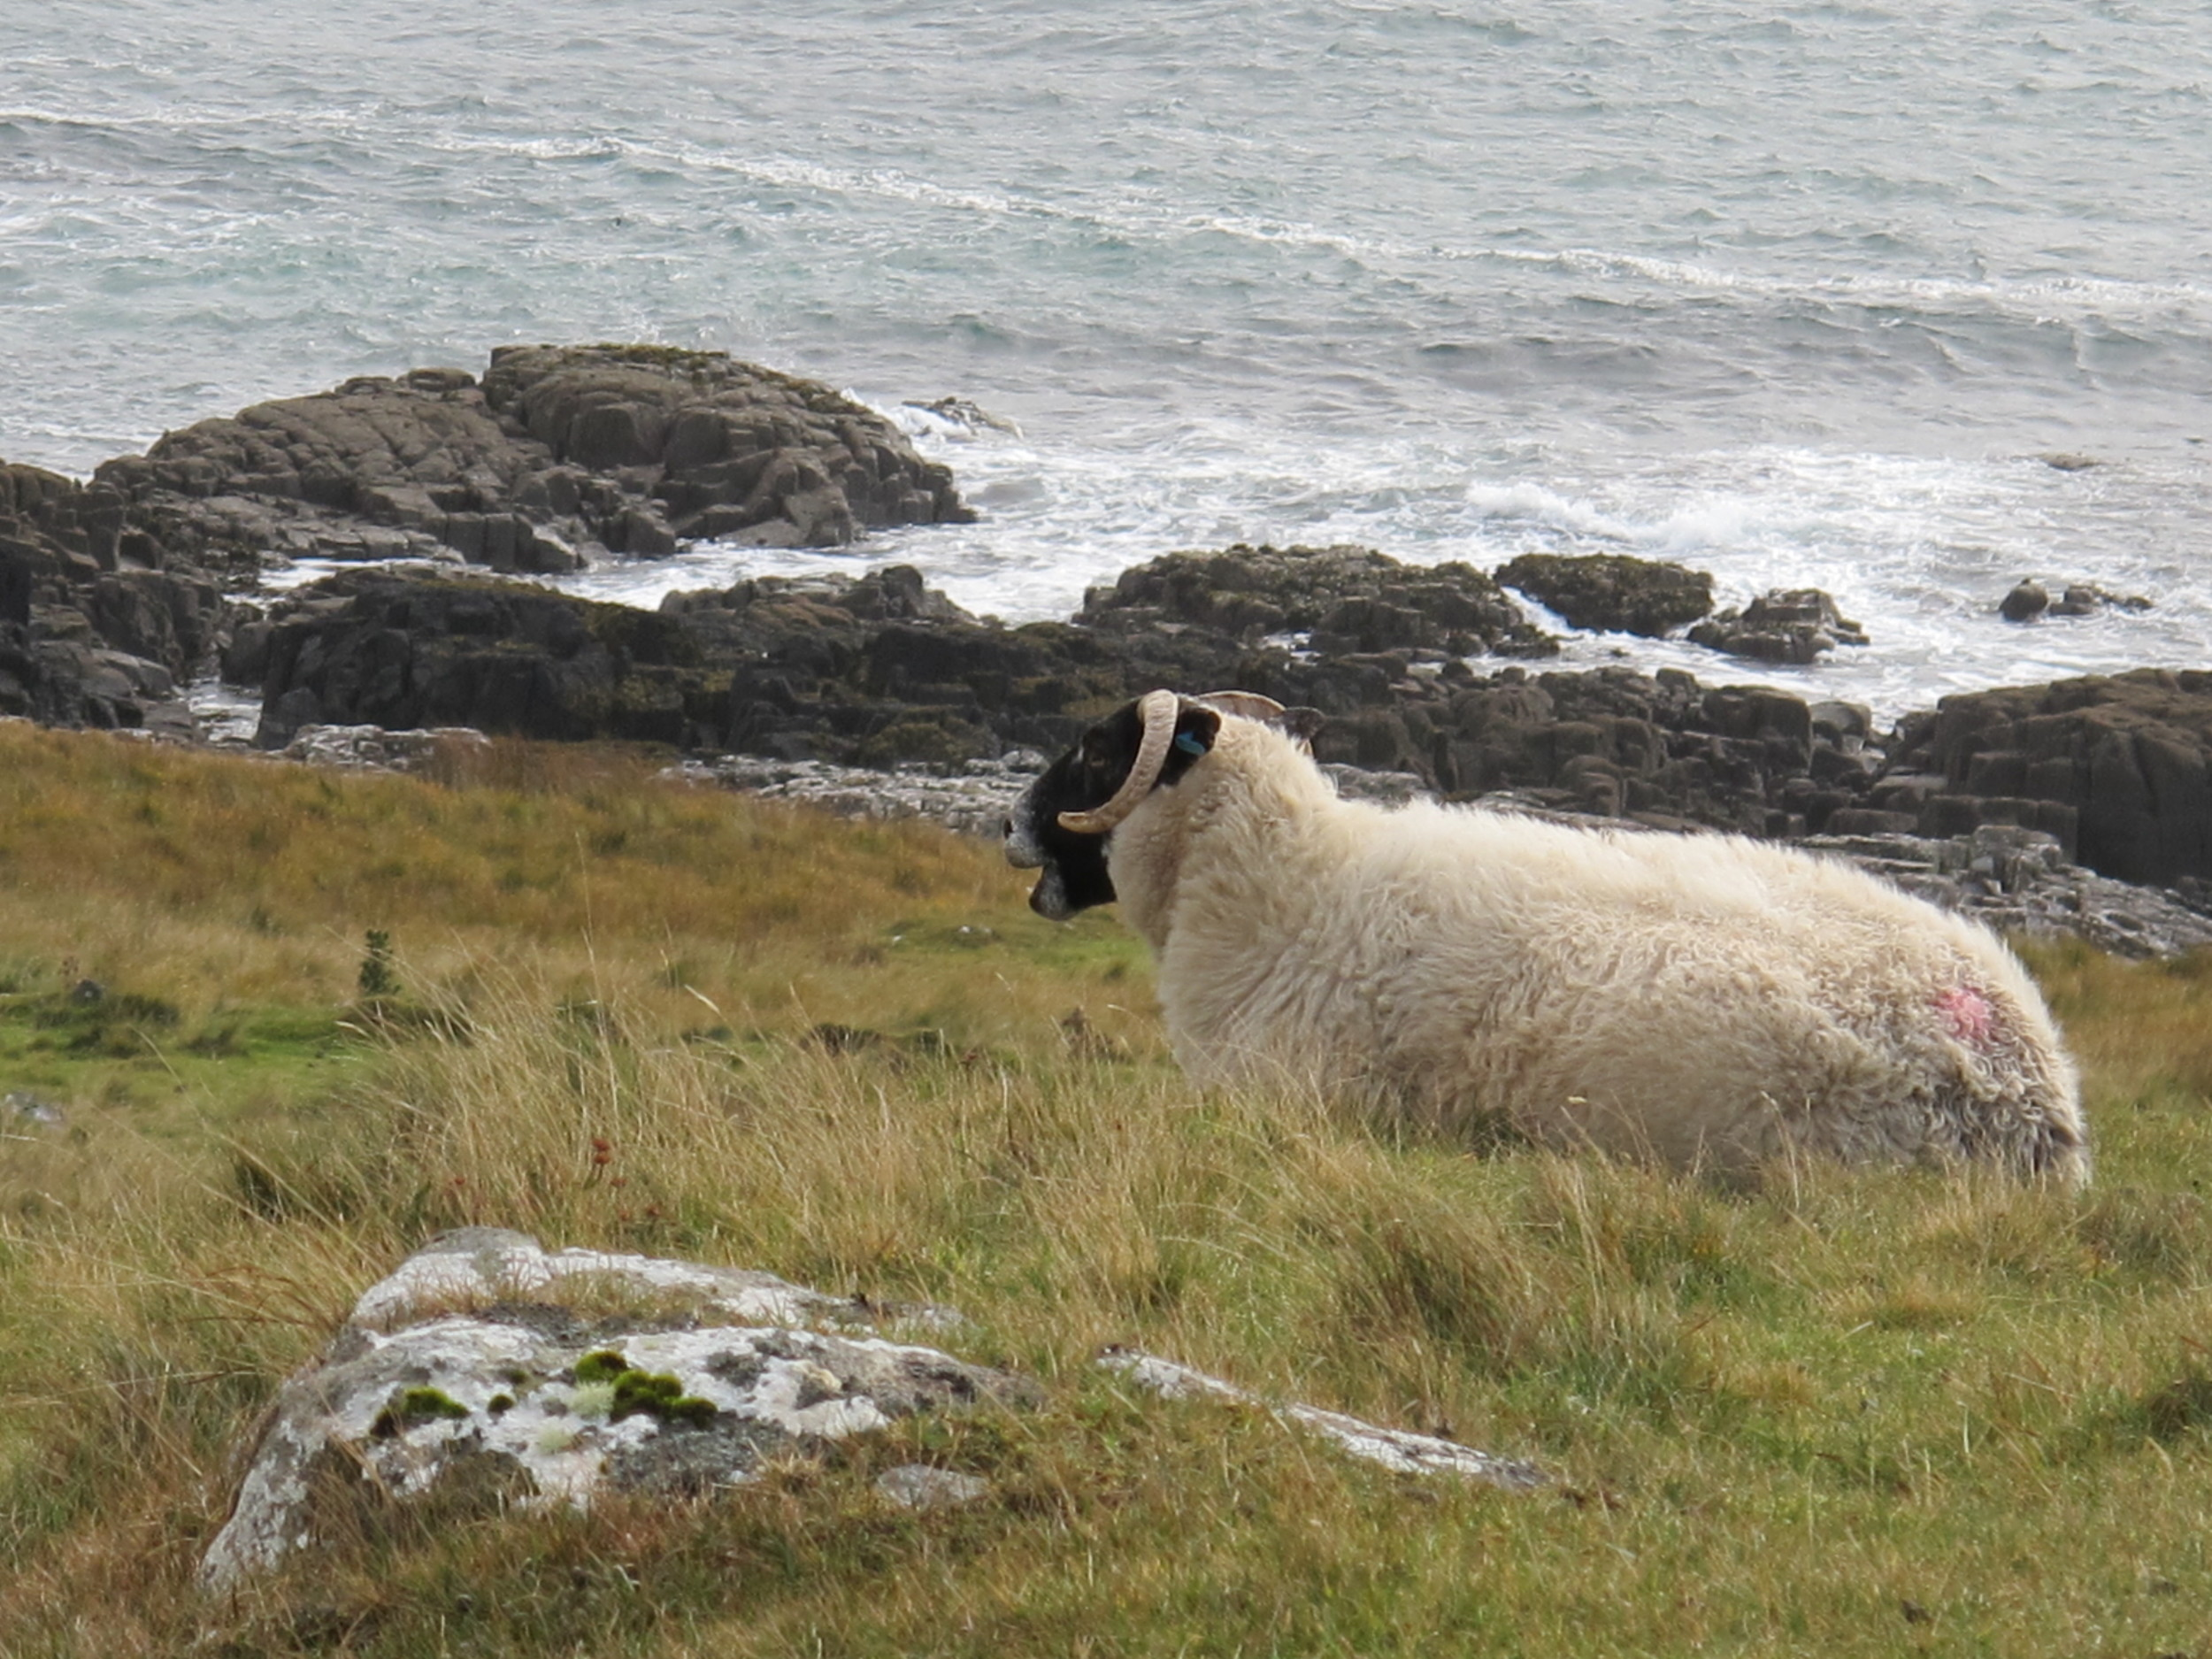 When walking through fields and along the coast, we often had company. Thousands of Highlanders were kicked off their land in the 1700s to make room for sheep. Many of them—the Highlanders, not sheep—were forced to immigrate to Canada, especially Nova Scotia, which still has a significant Gaelic-speaking population.